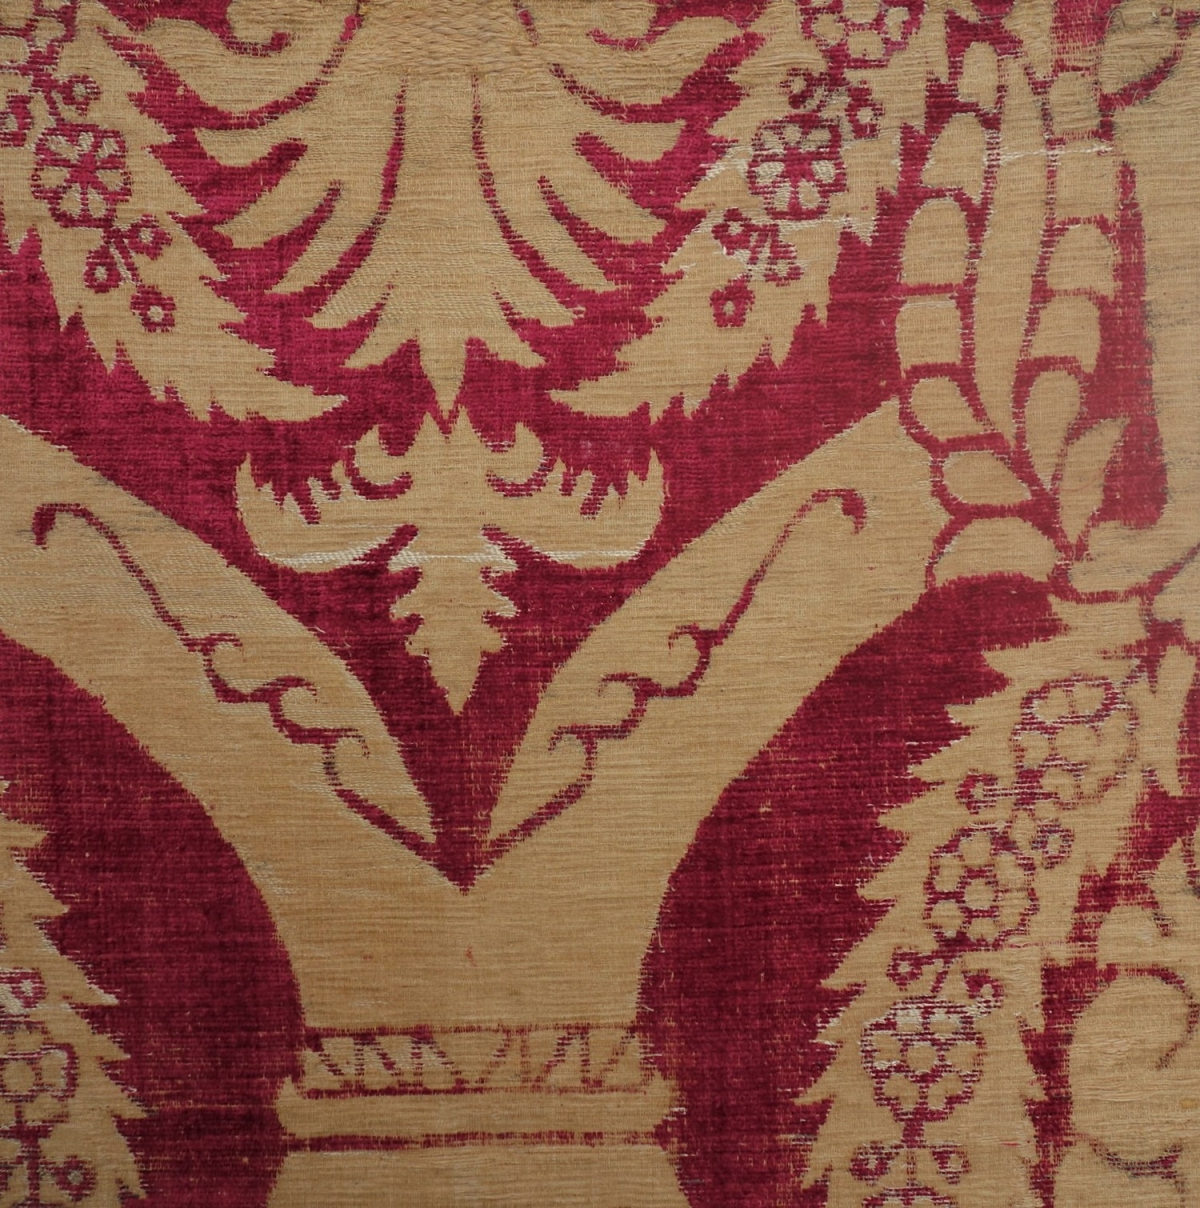 Late 15th century silk and linen velvet, probably Italian.